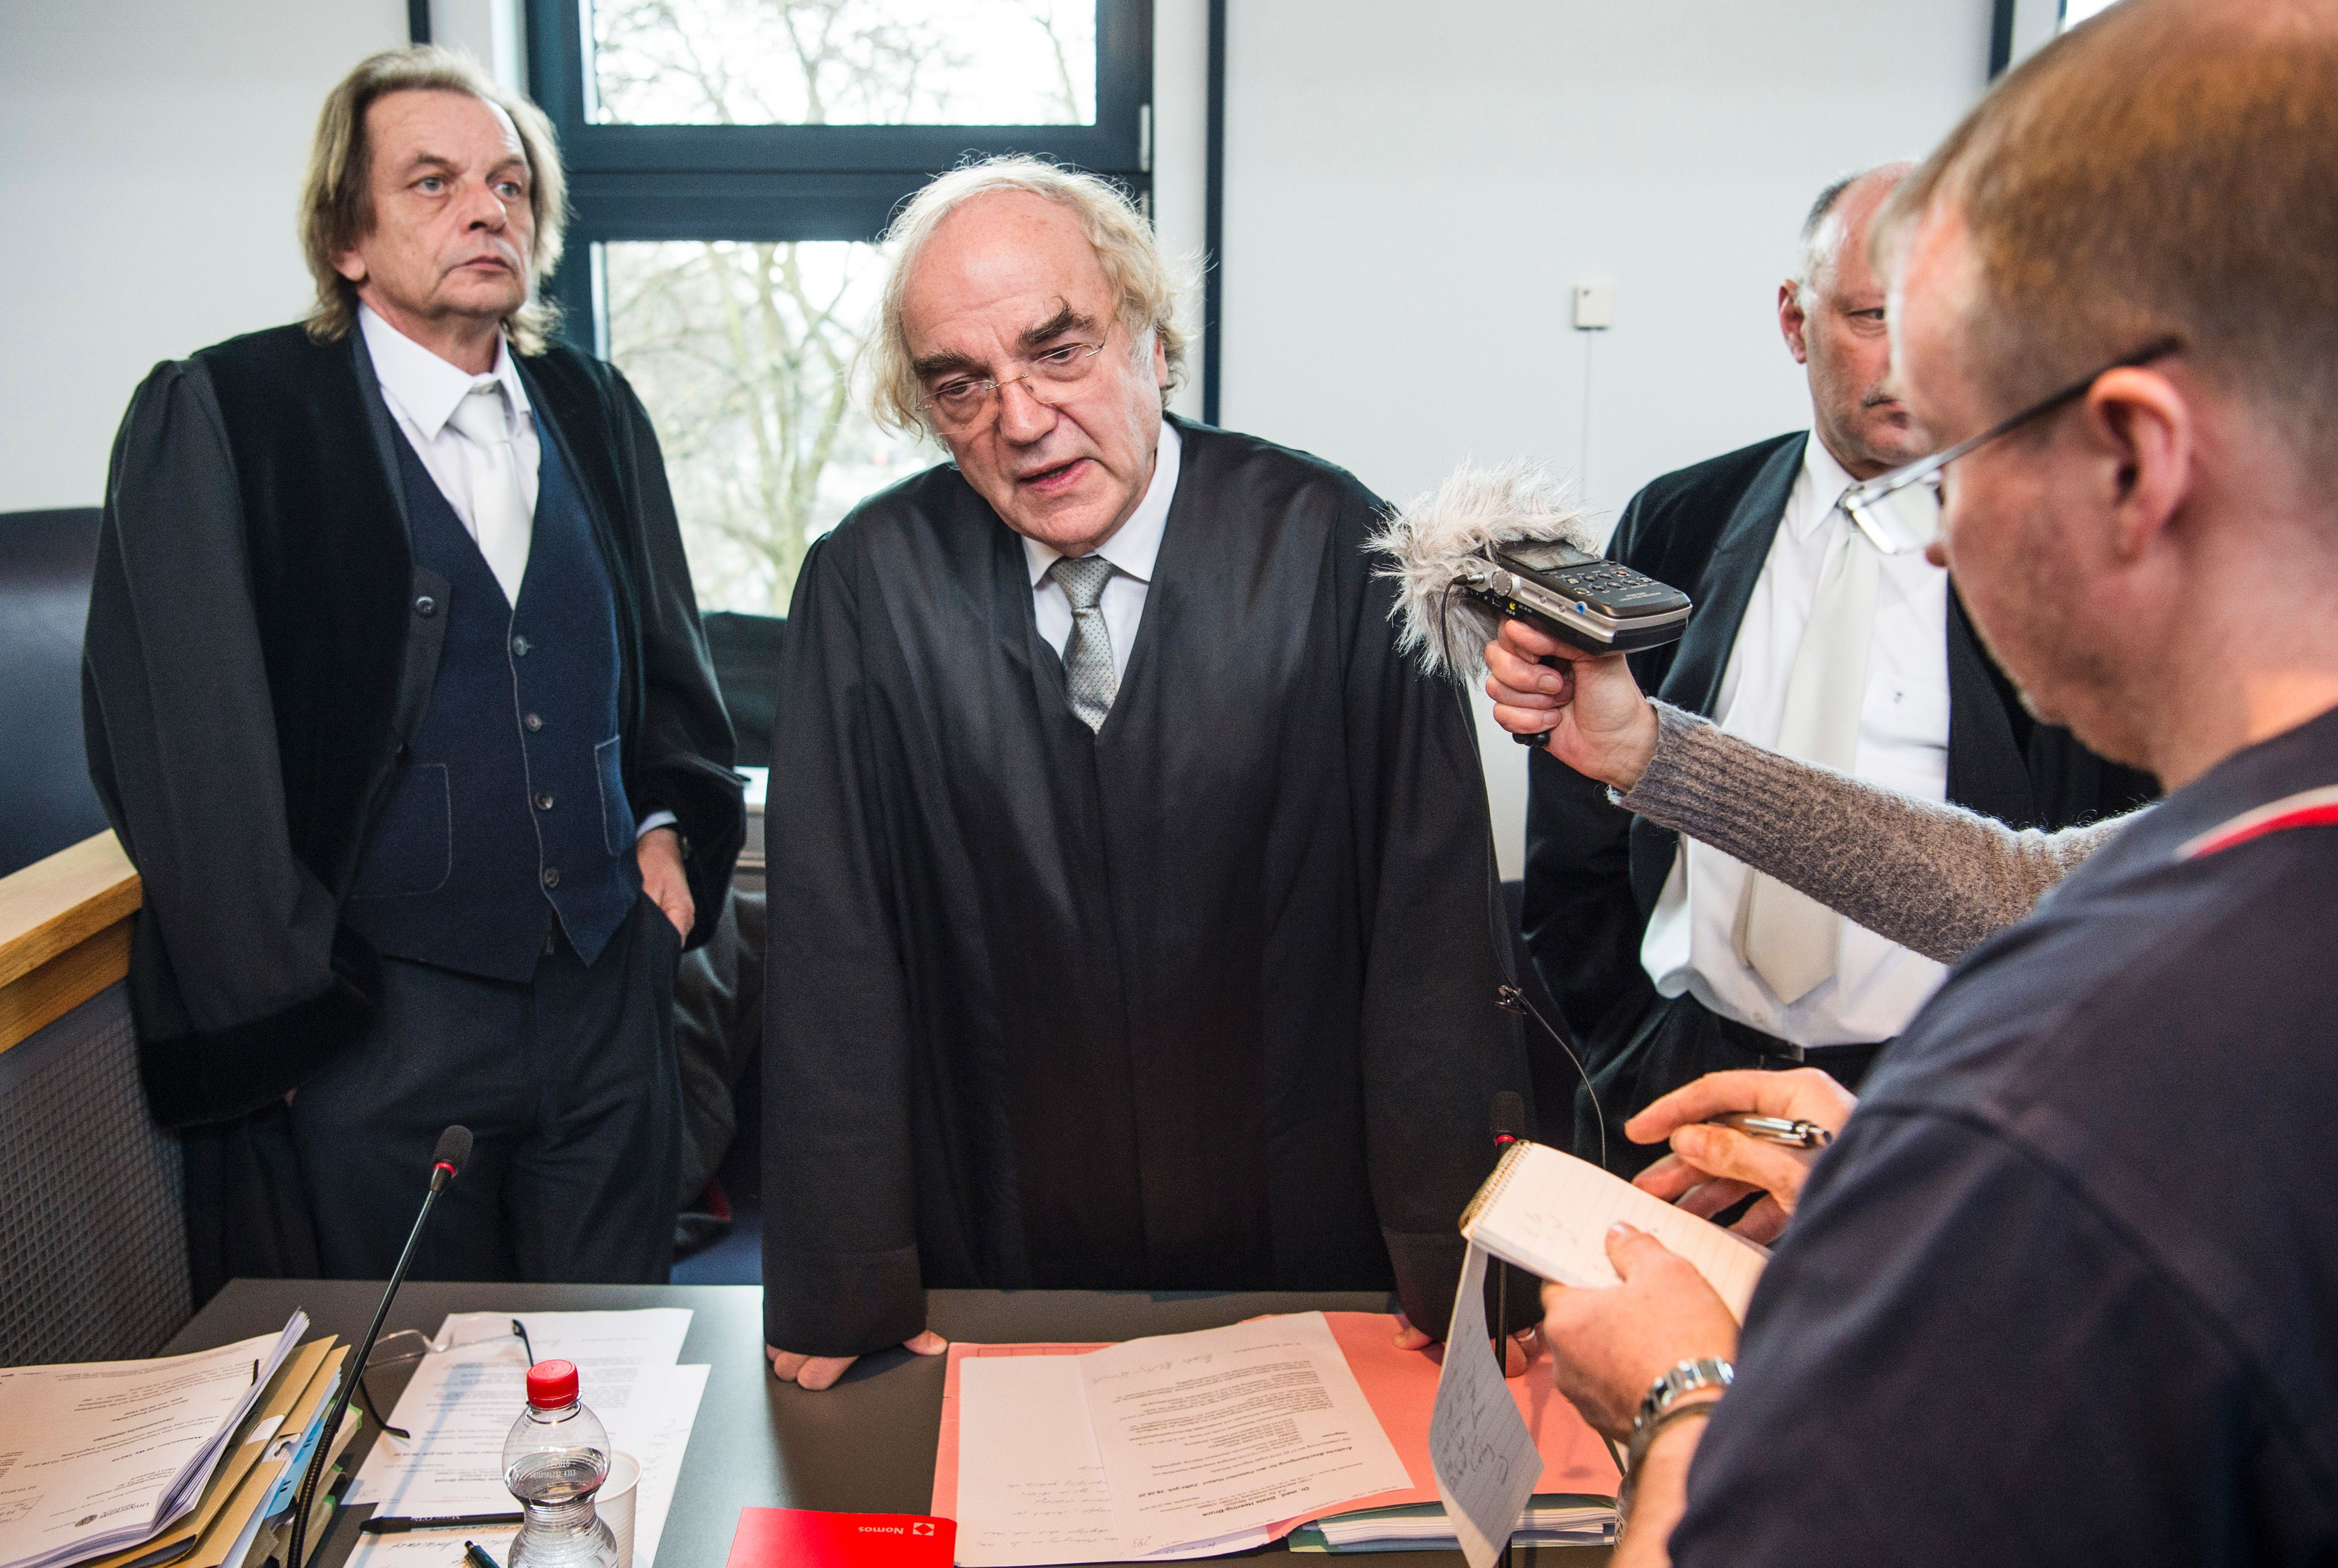 Prosecutor Thomas Walther (center) at the court on the first day of Hubert Zafke's trial, February 29, 2016.